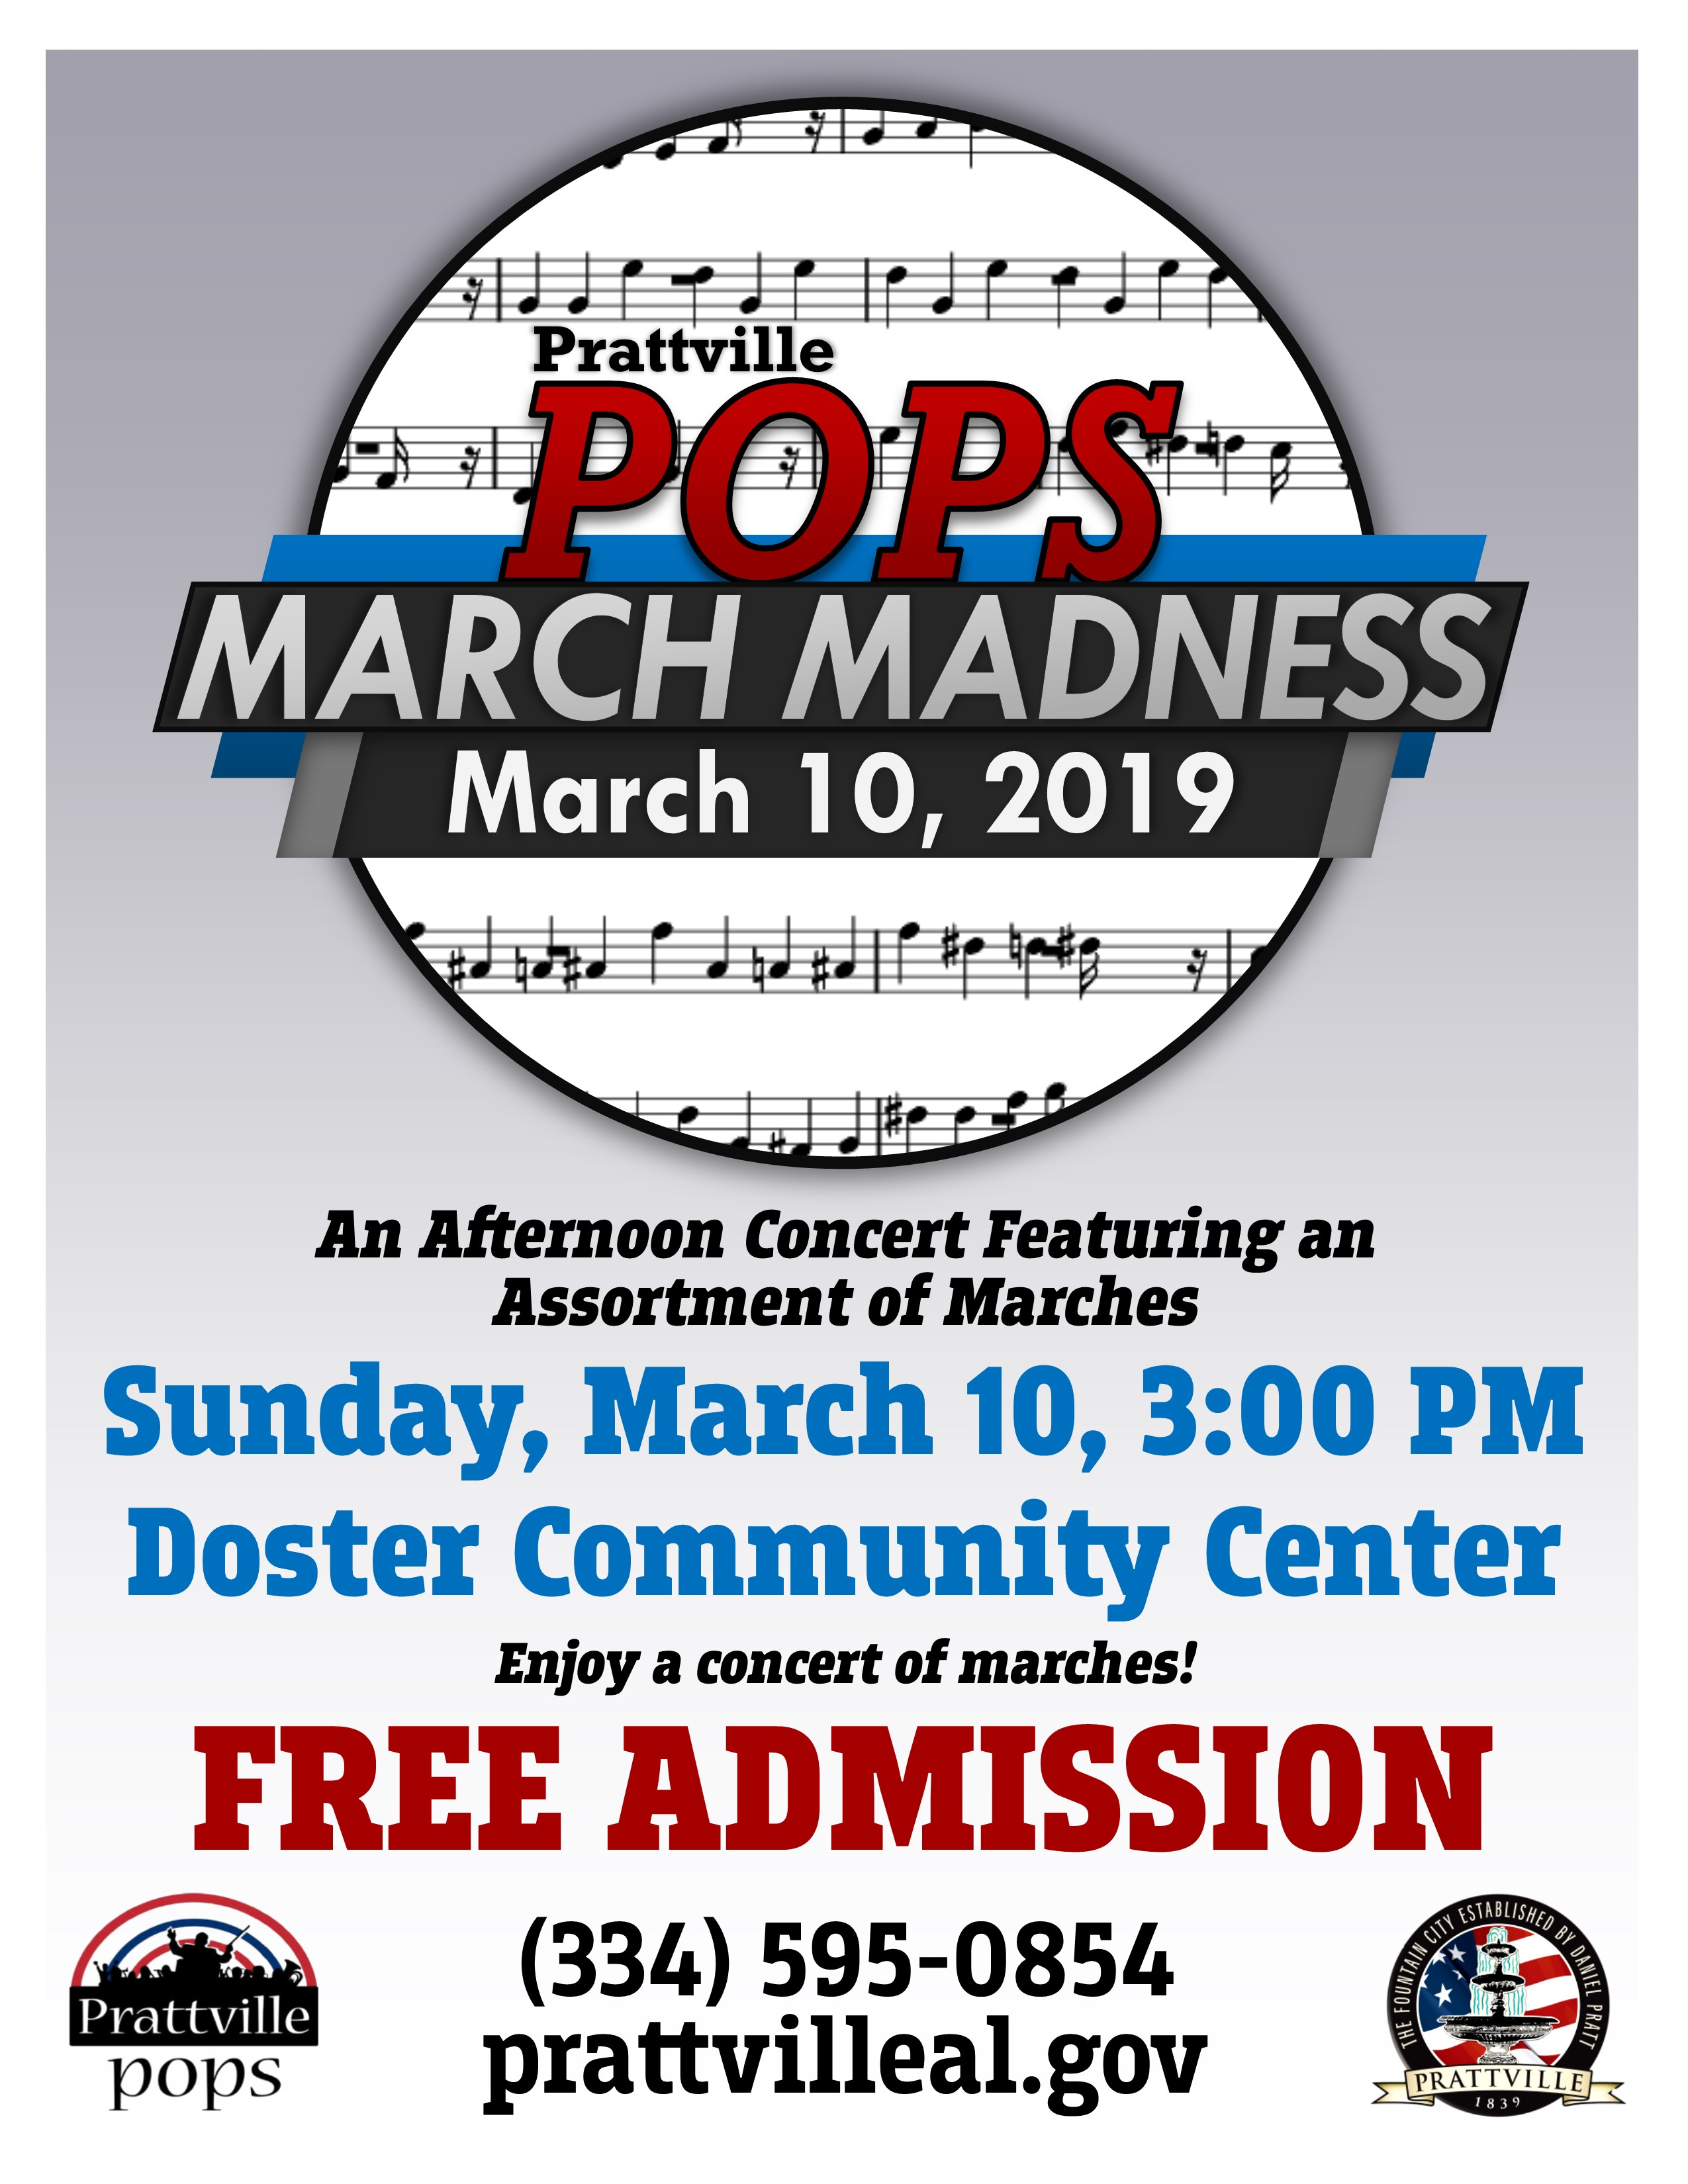 POPS March Madness